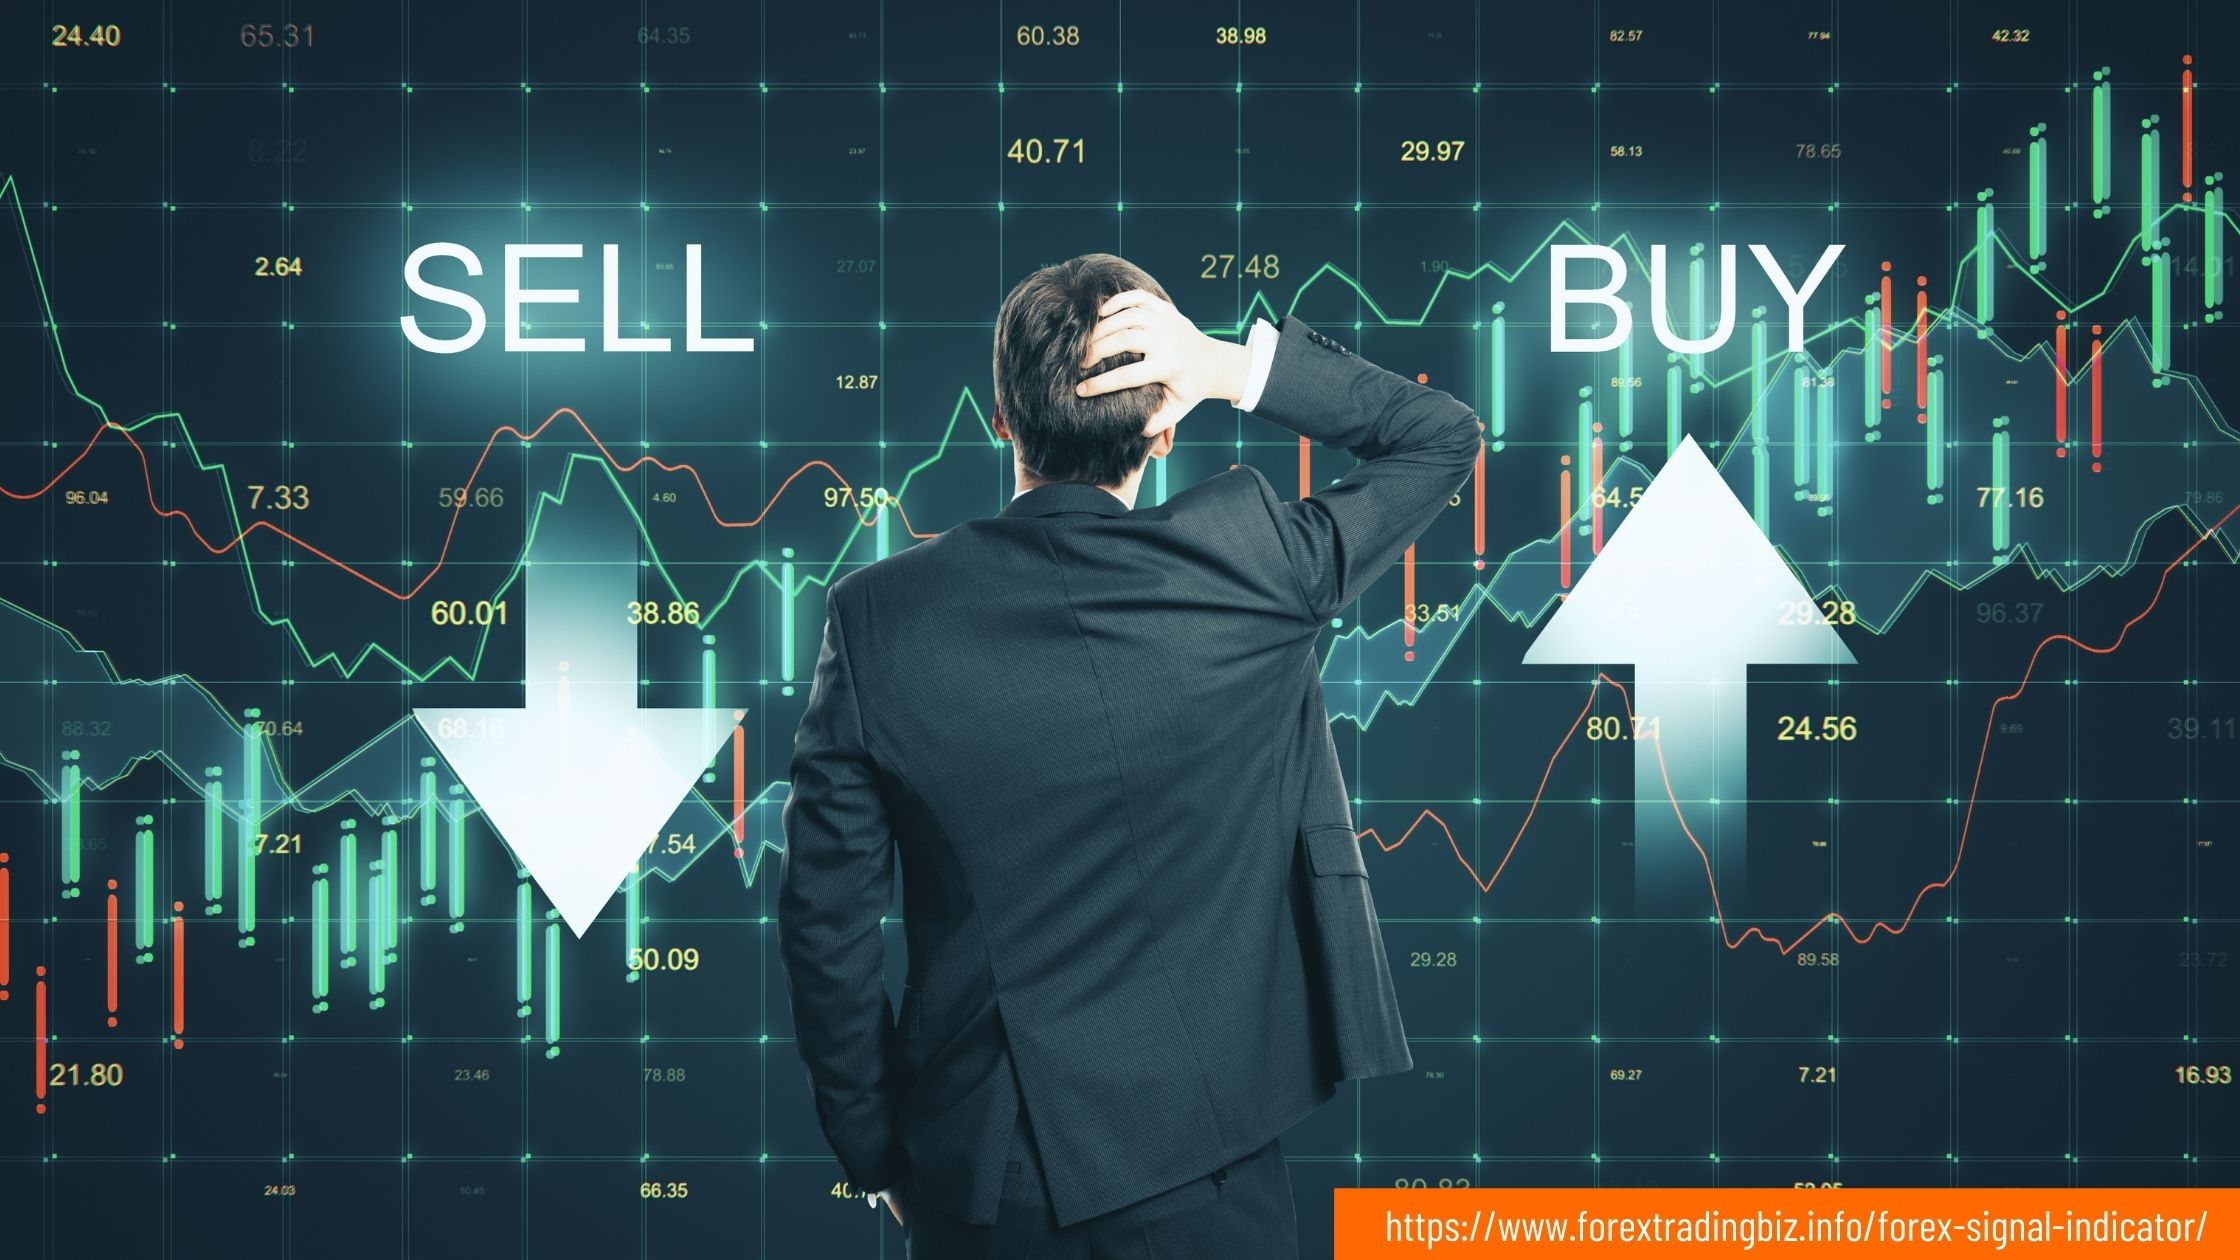 Forex Signal Indicator – Tips to Read and Understand